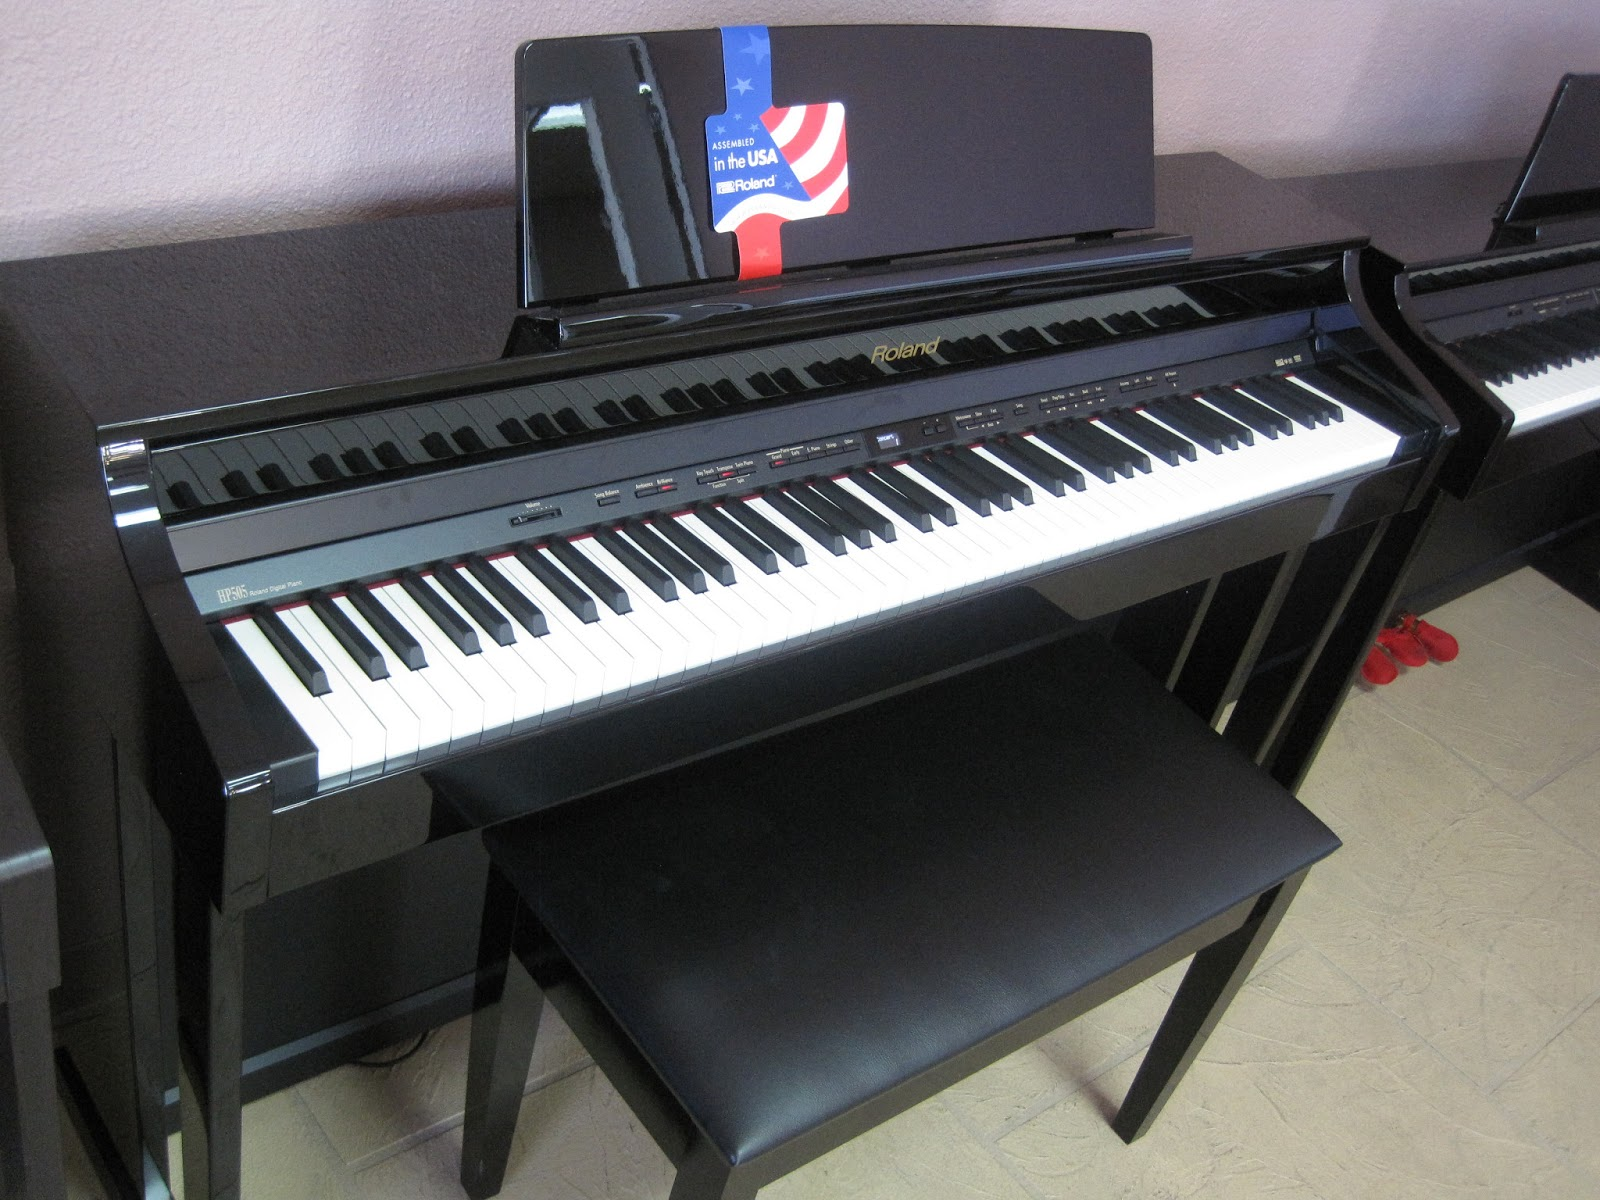 az piano reviews review roland hp503 hp505 hp507 lx15 digital pianos recommended for. Black Bedroom Furniture Sets. Home Design Ideas